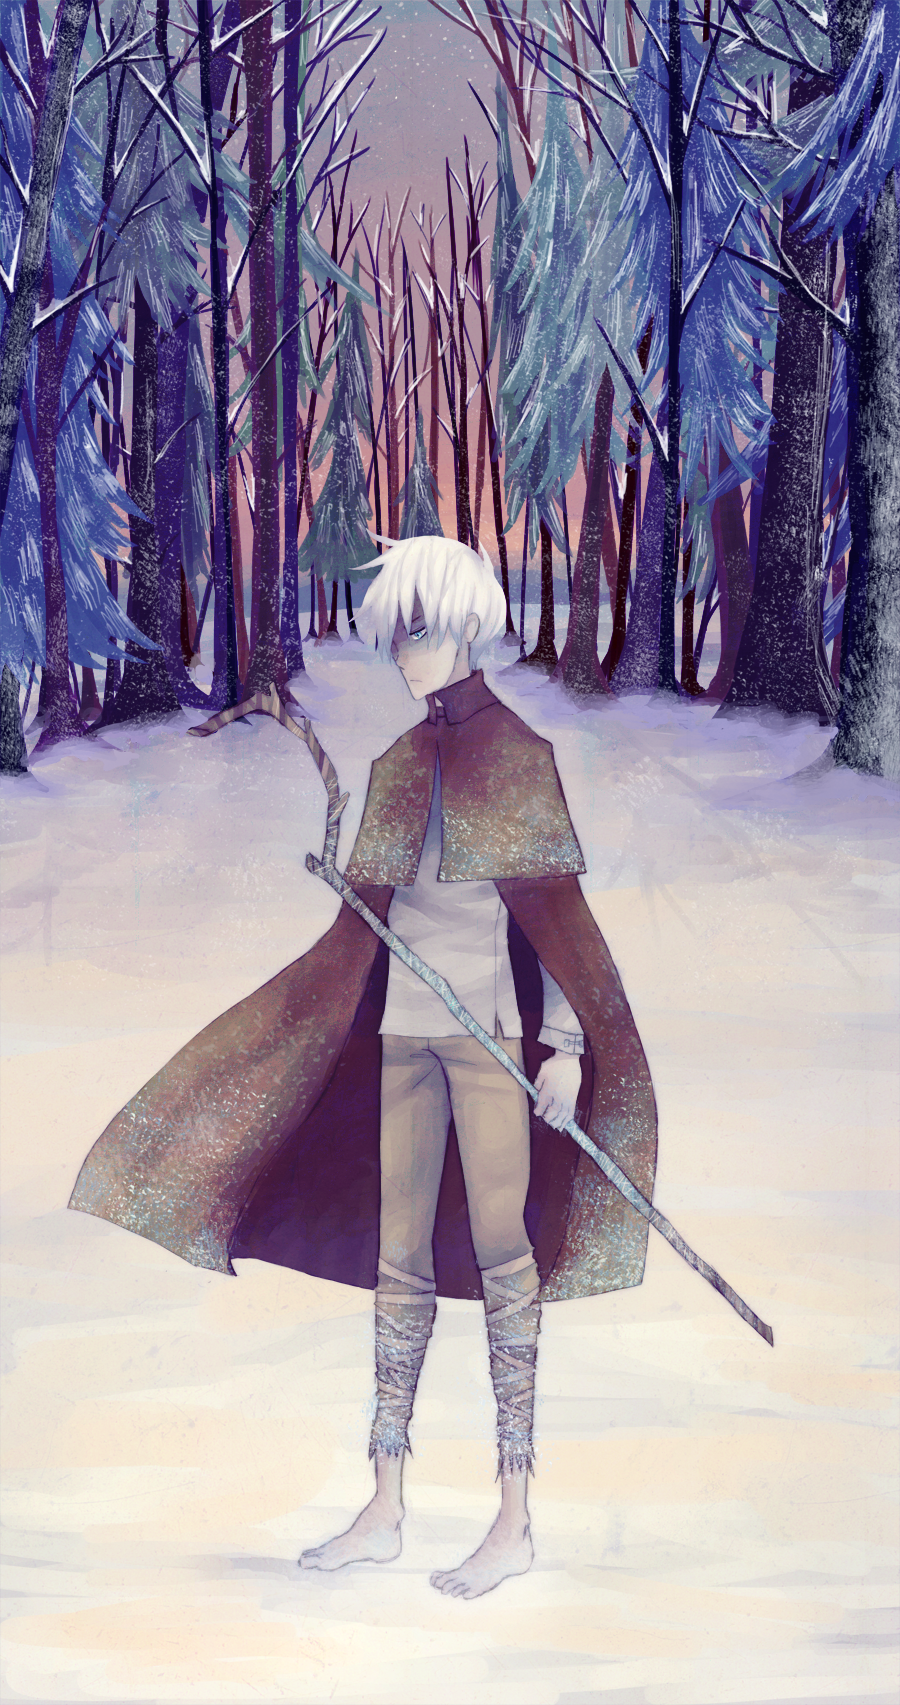 Jack Frost Alone by ruuari